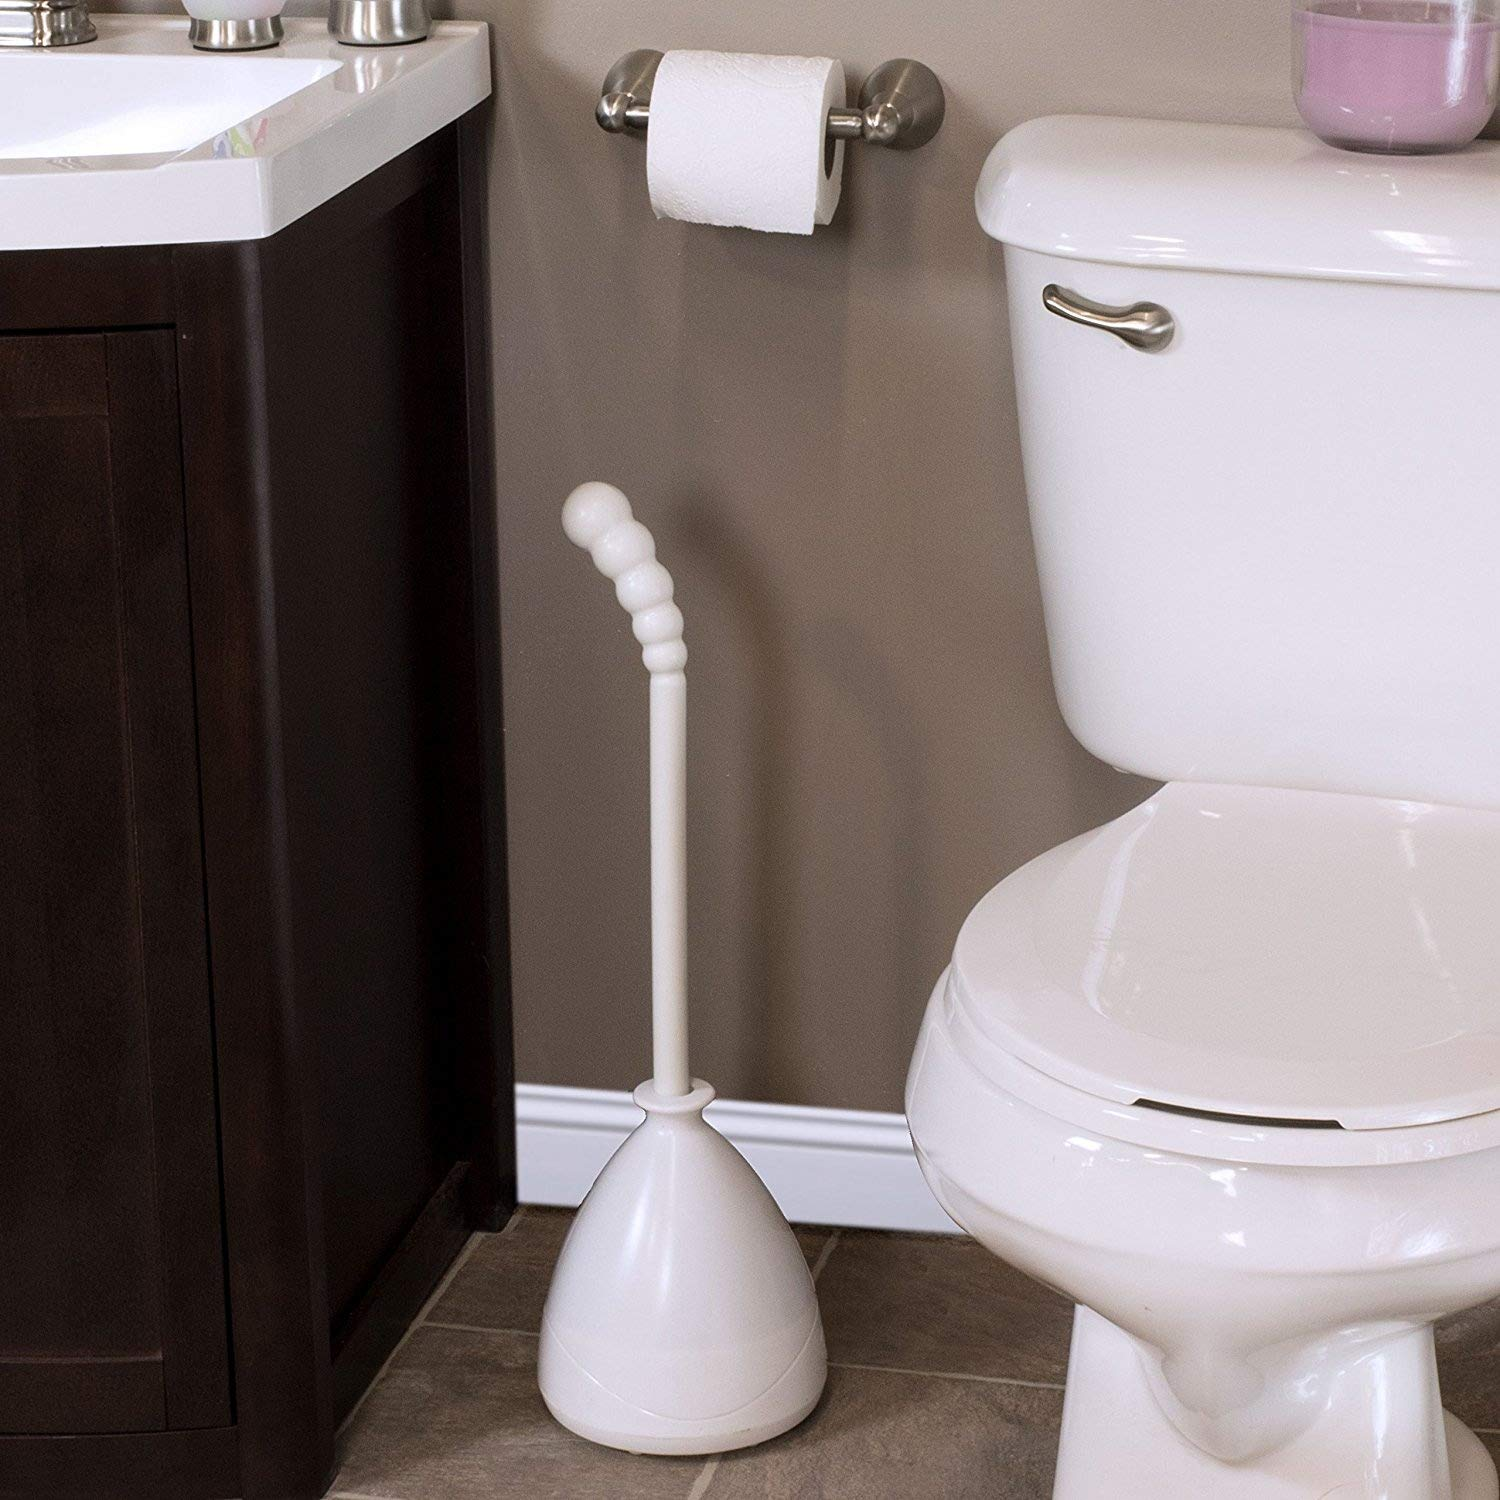 Deluxe Heavy Duty Toilet Plunger with Easy-Lift Storage Caddy Holder